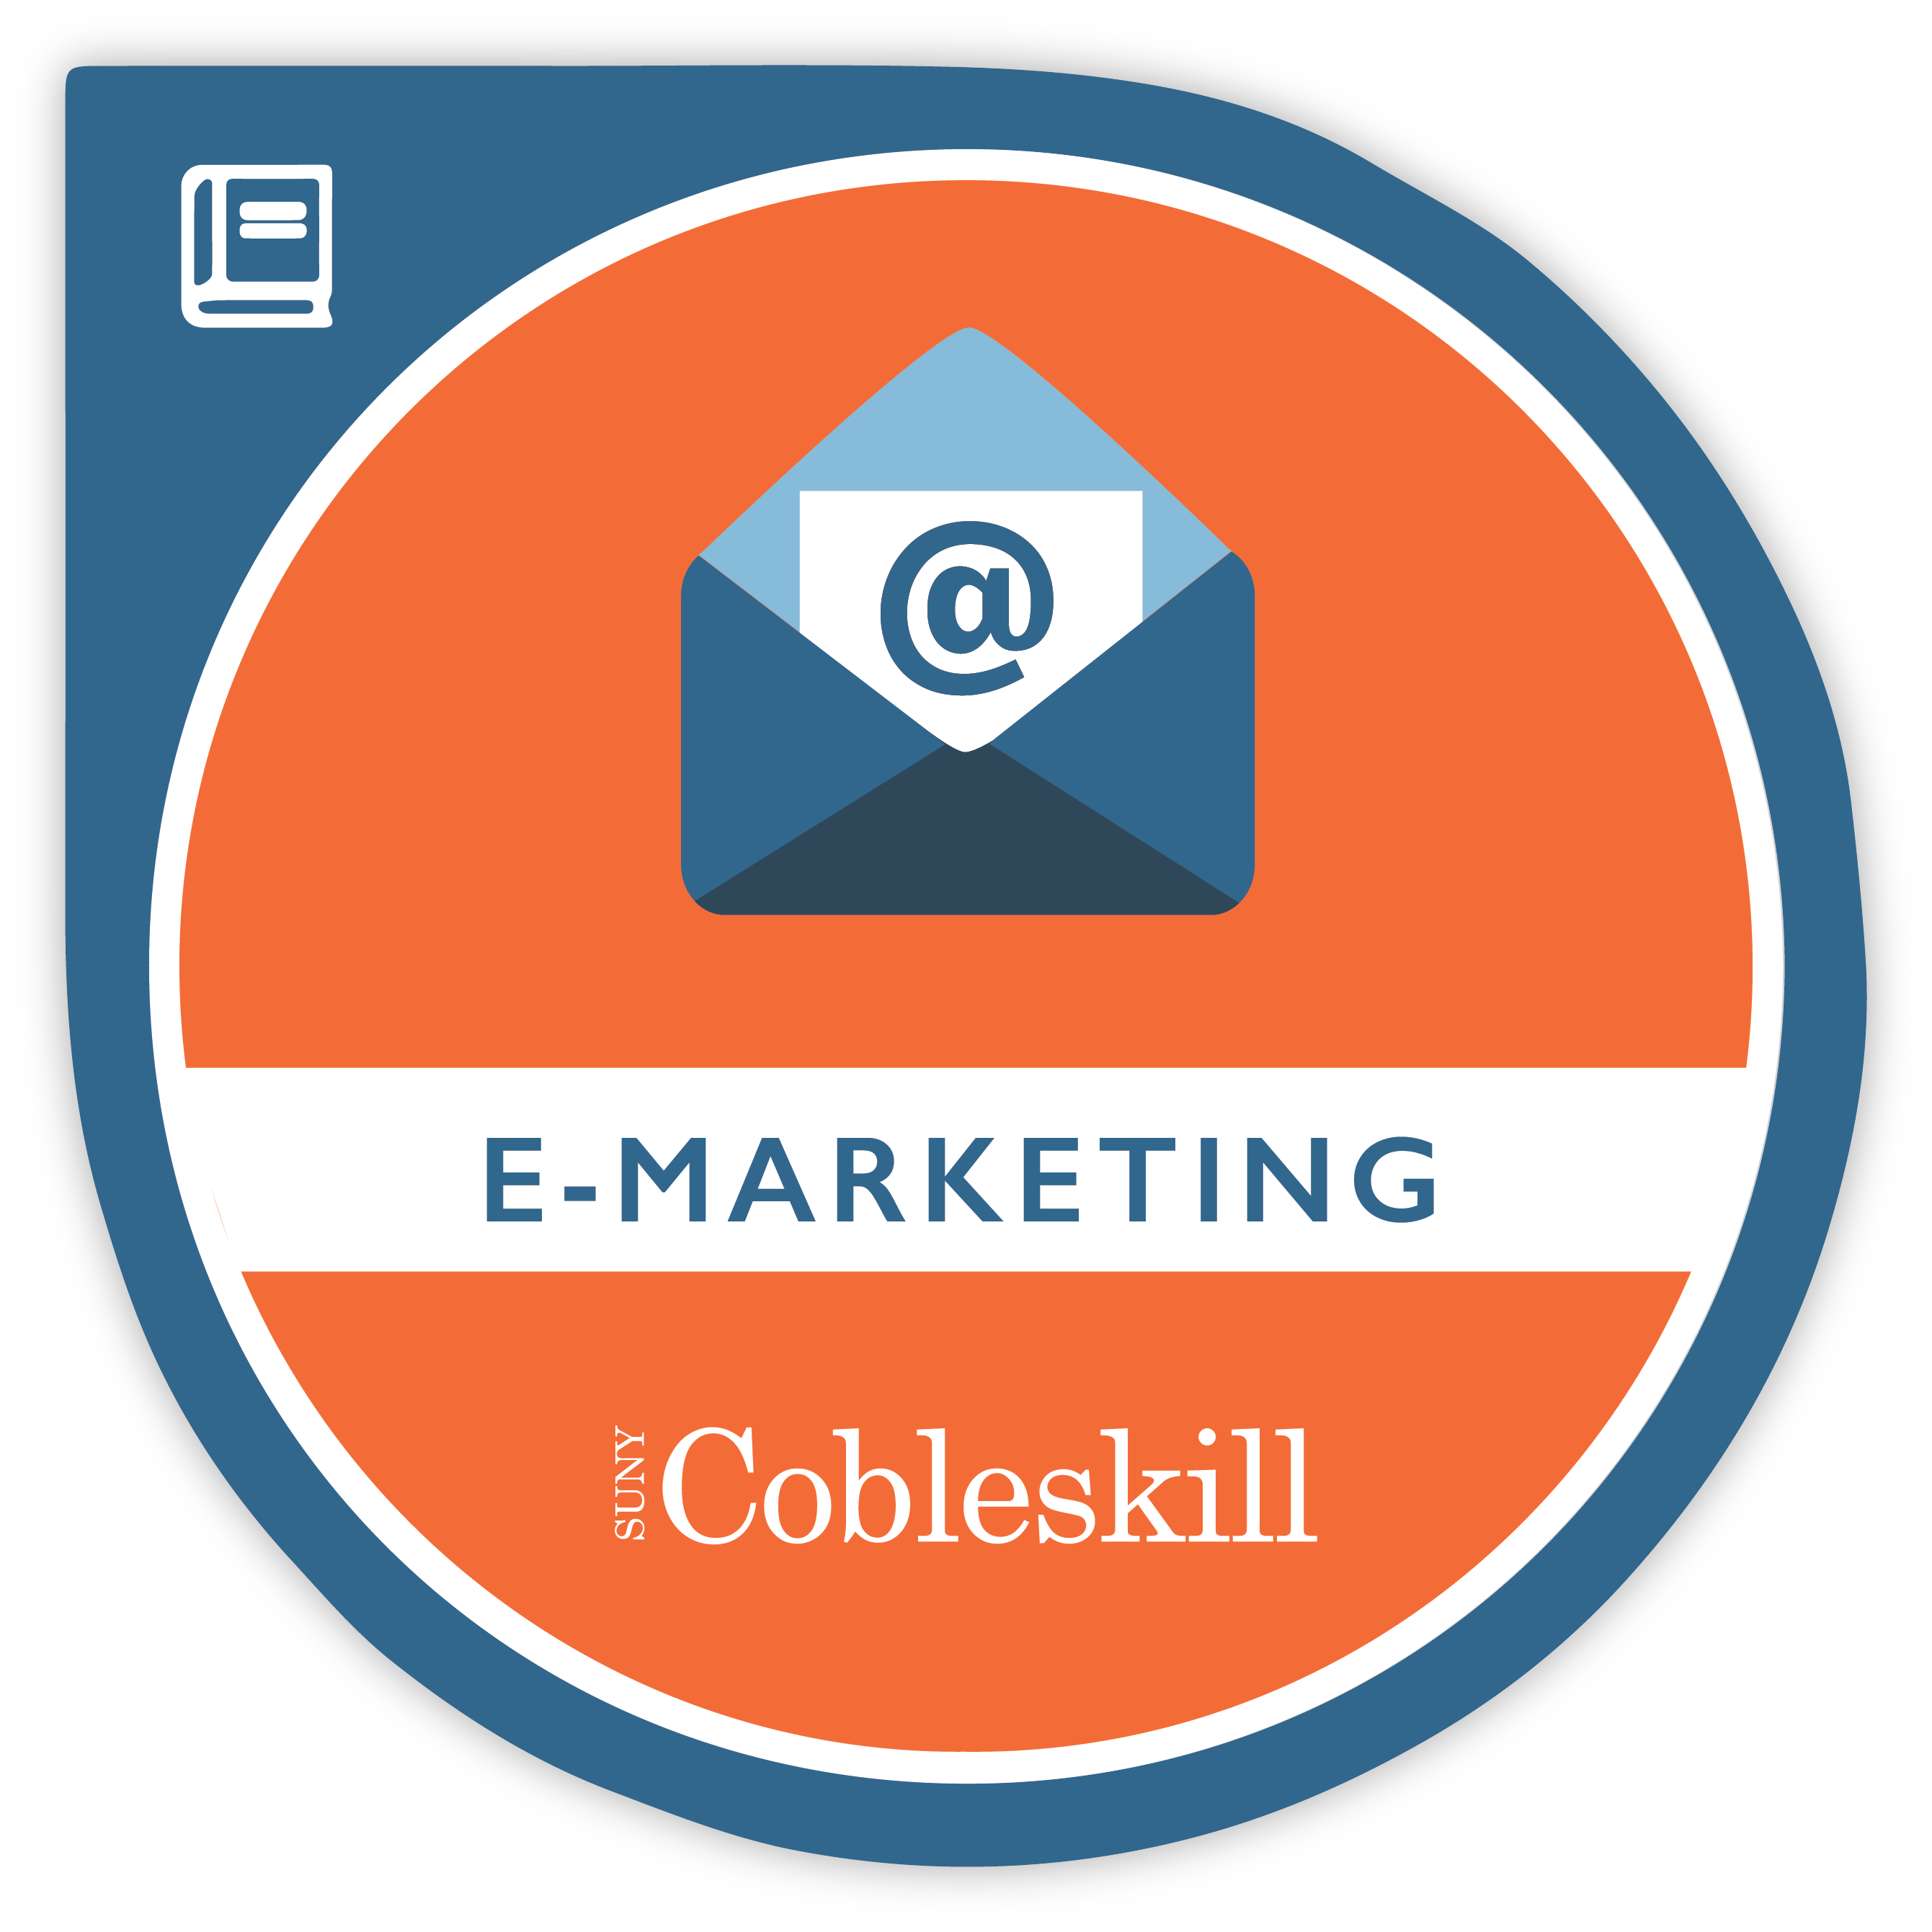 e-marketing badge